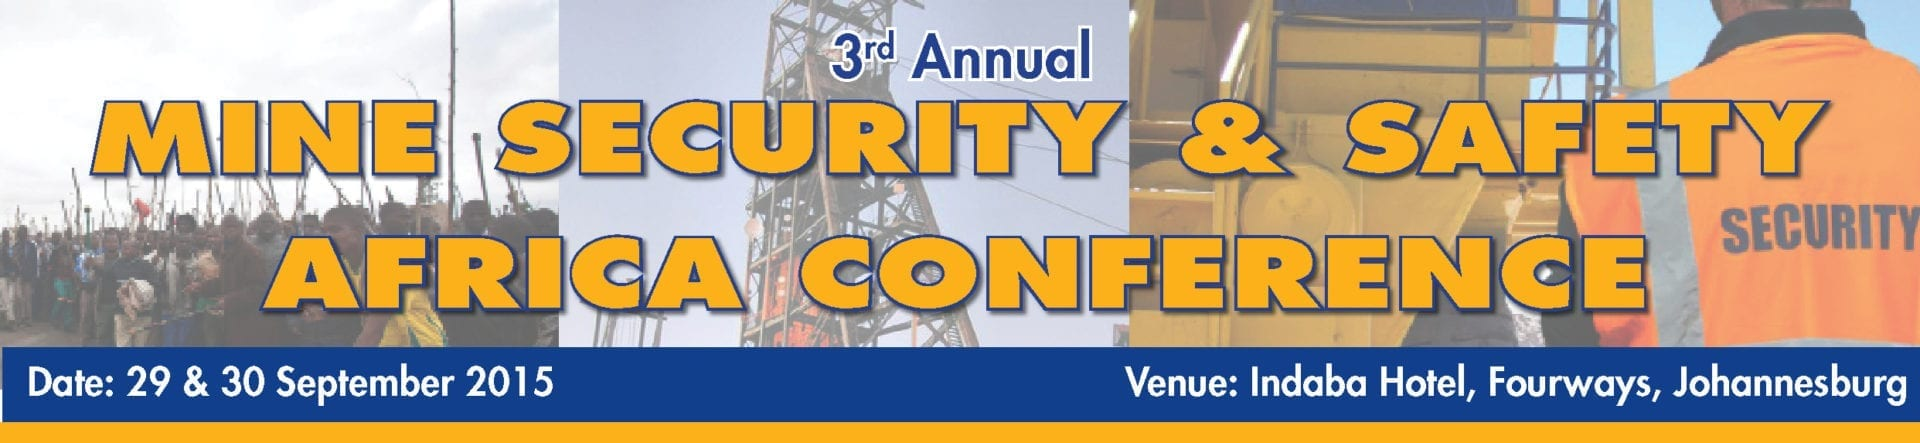 3rd Annual Mine Security and Safety Africa Conference